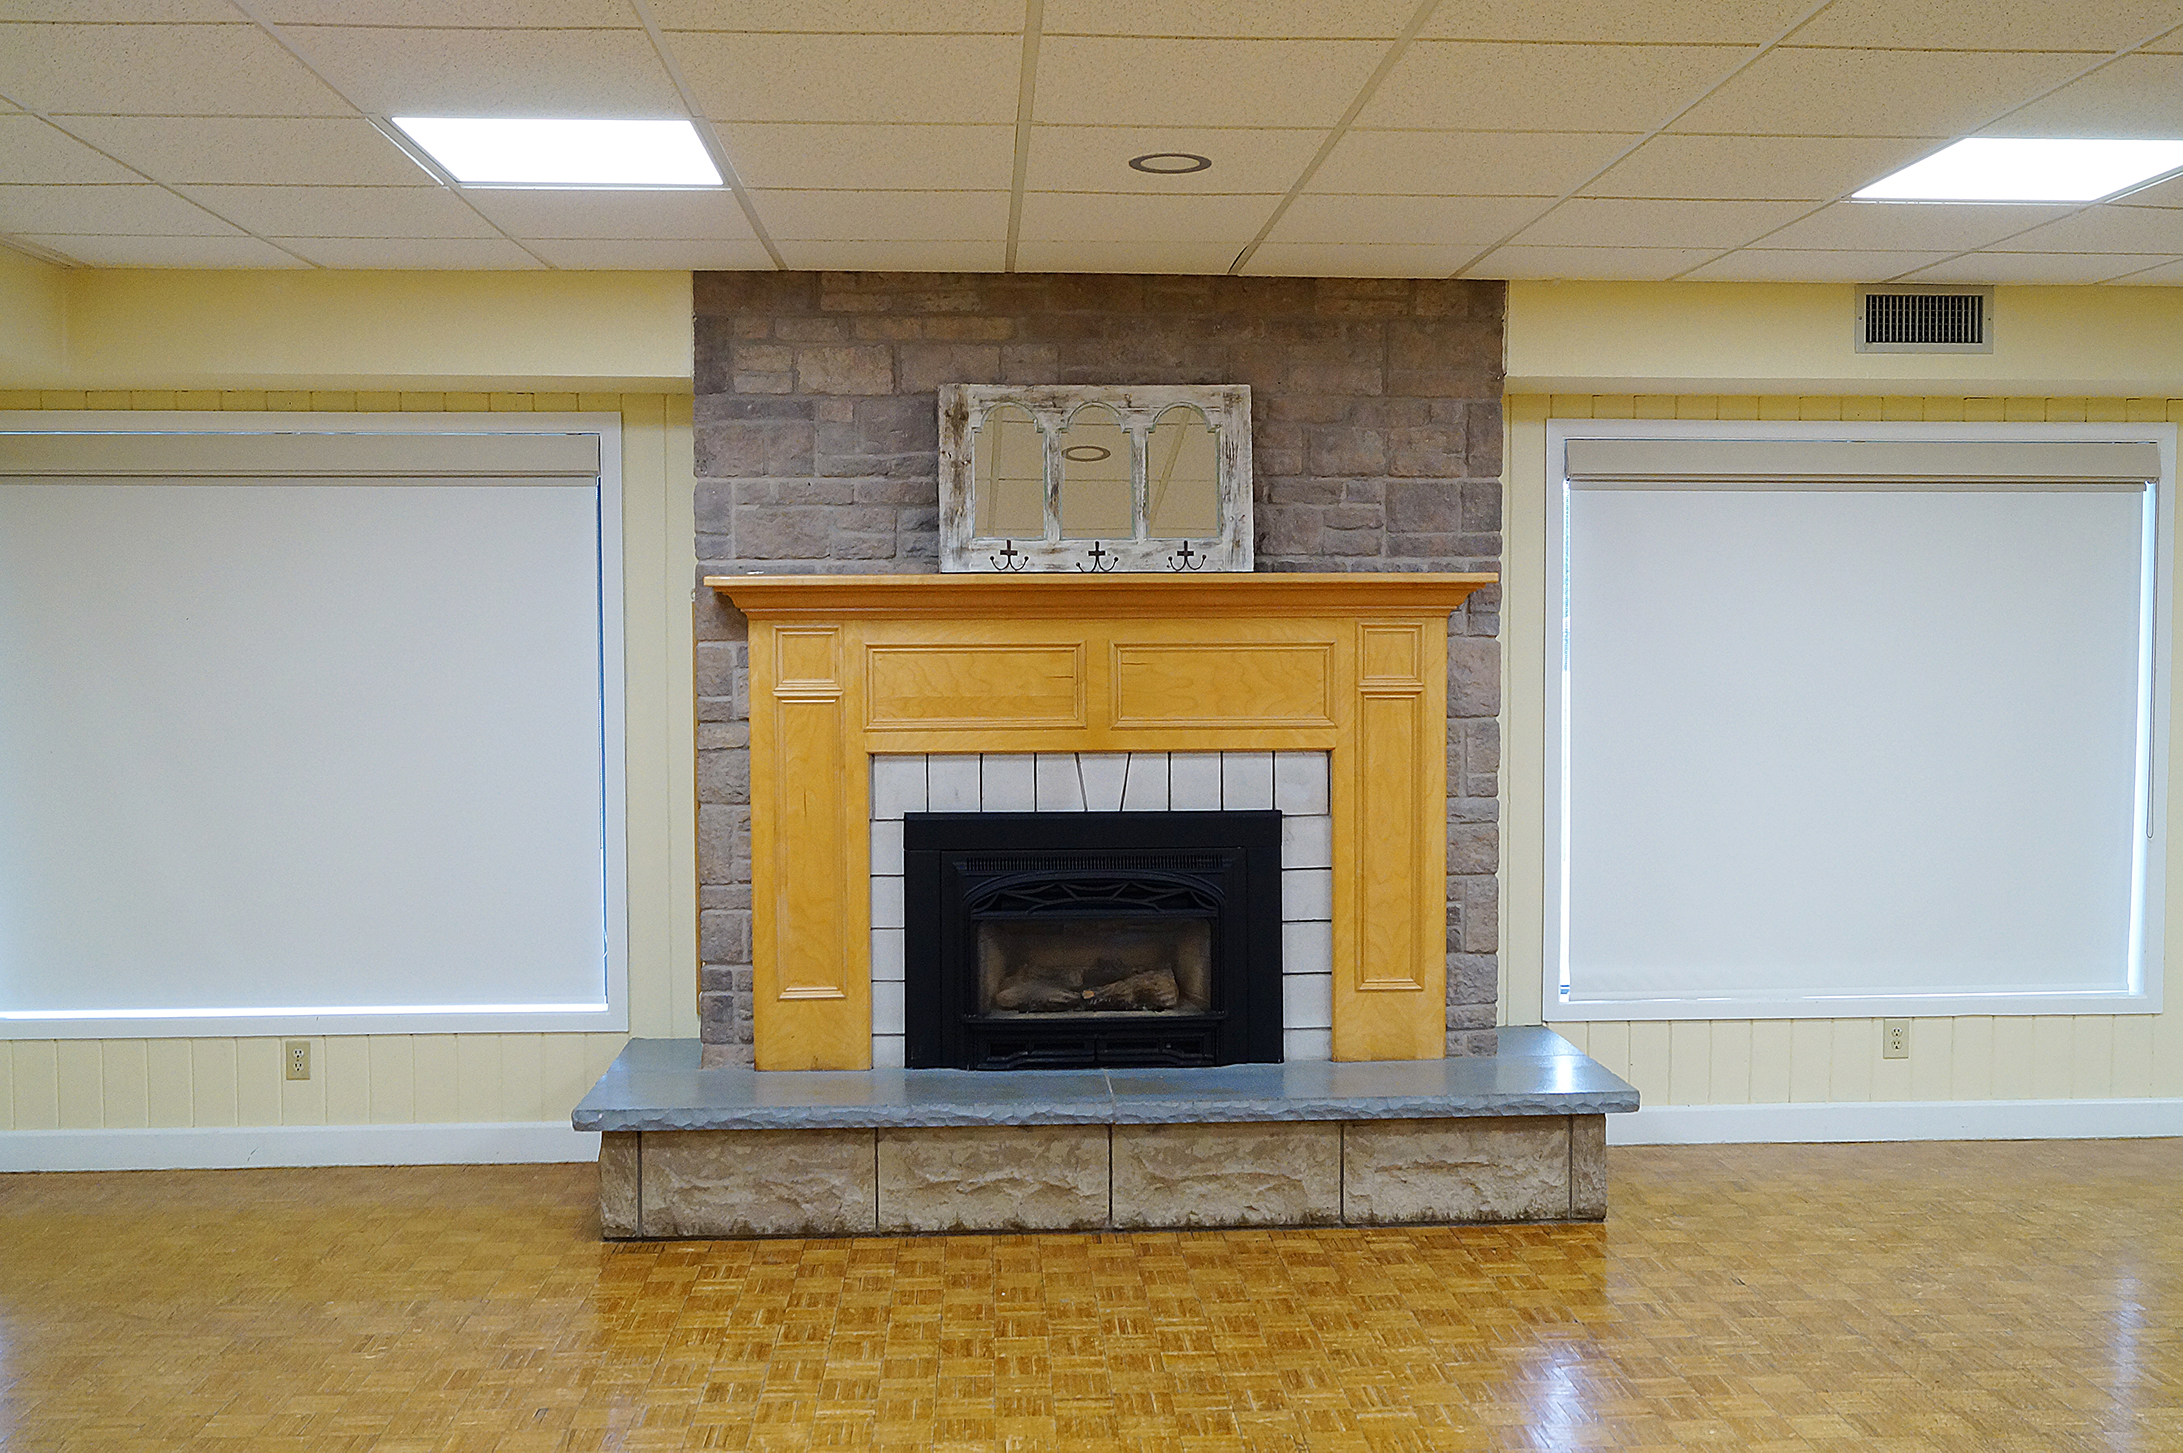 Monora Park Pavilion Multi Purpose Room Fire Place